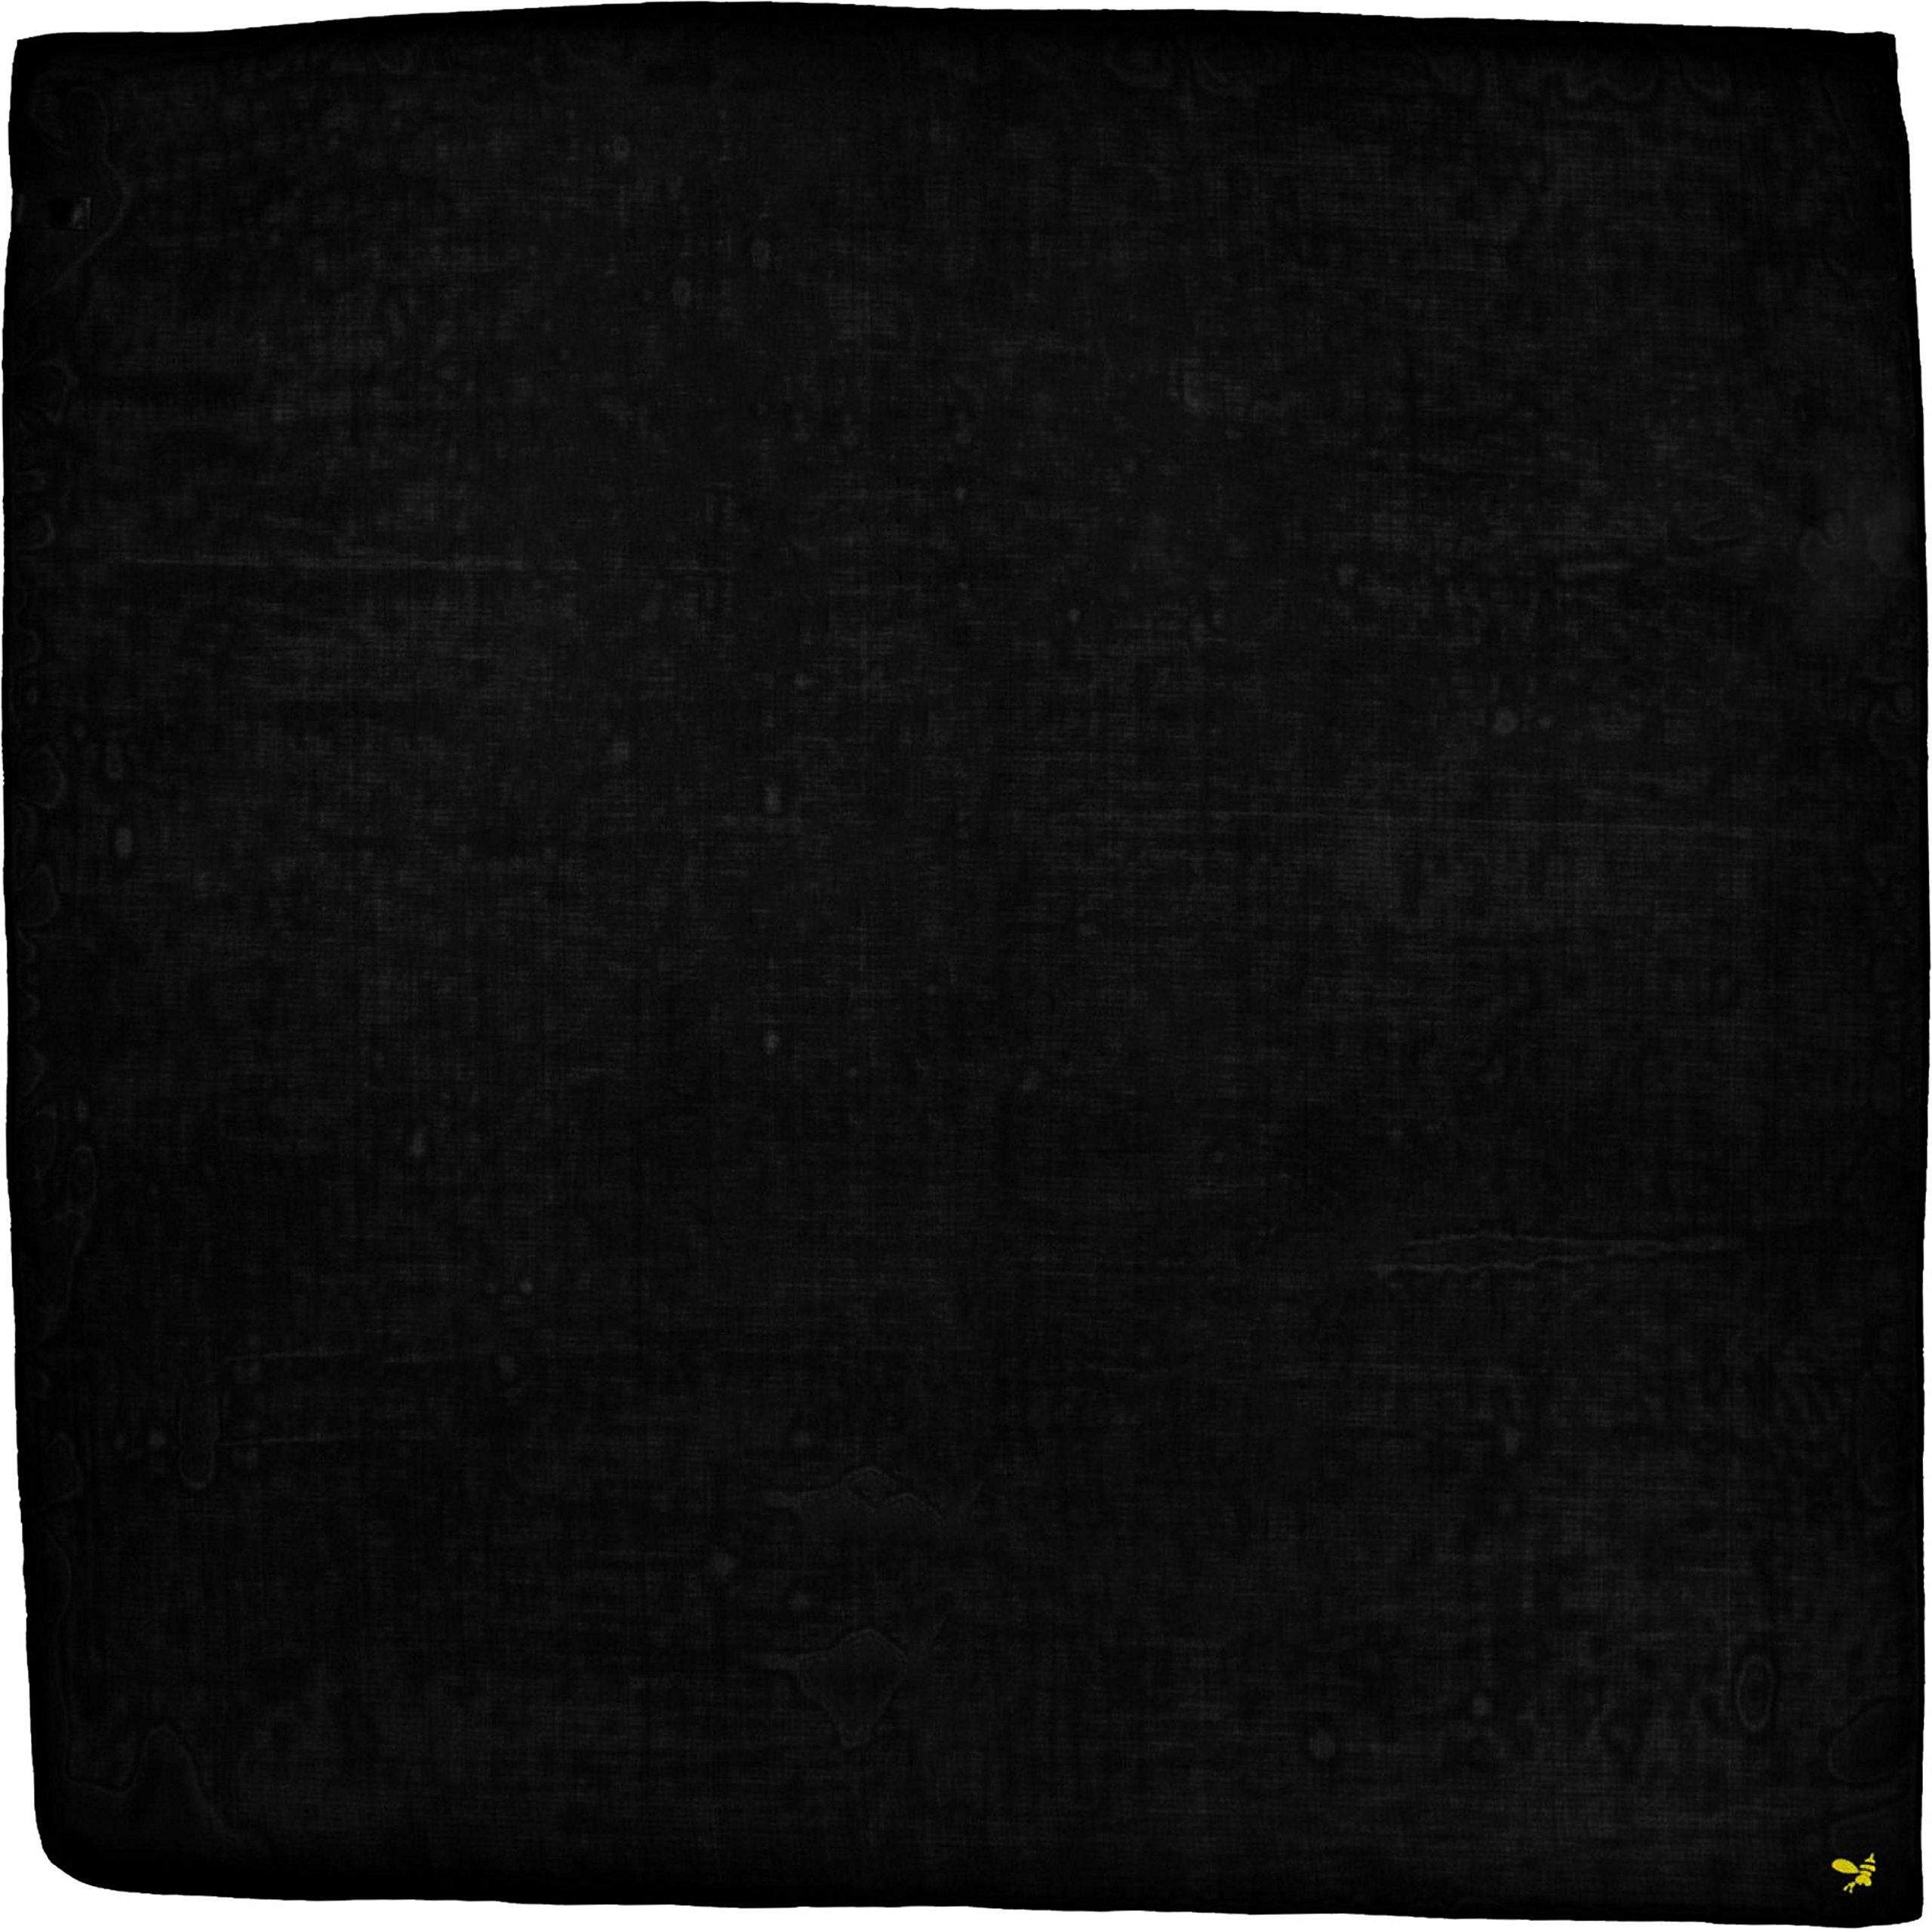 Black Large Very Fine Pure Silk Square Scarf by Bees Knees Fashion (Image #1)